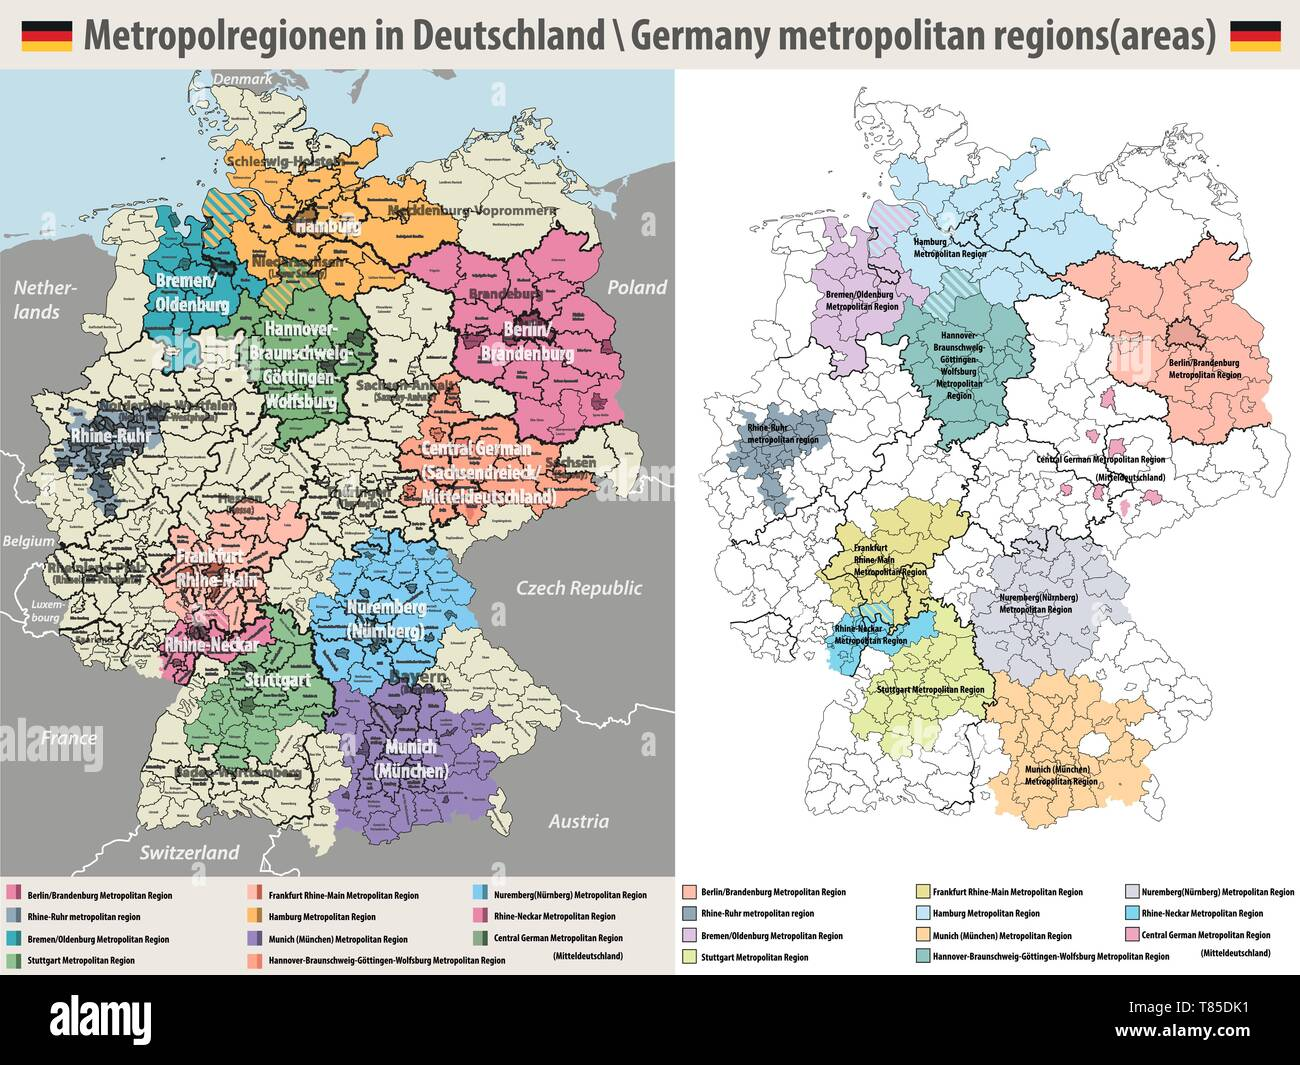 Detailed Map Of Germany.Vector High Detailed Map Of Germany Metropolitan Regions Areas